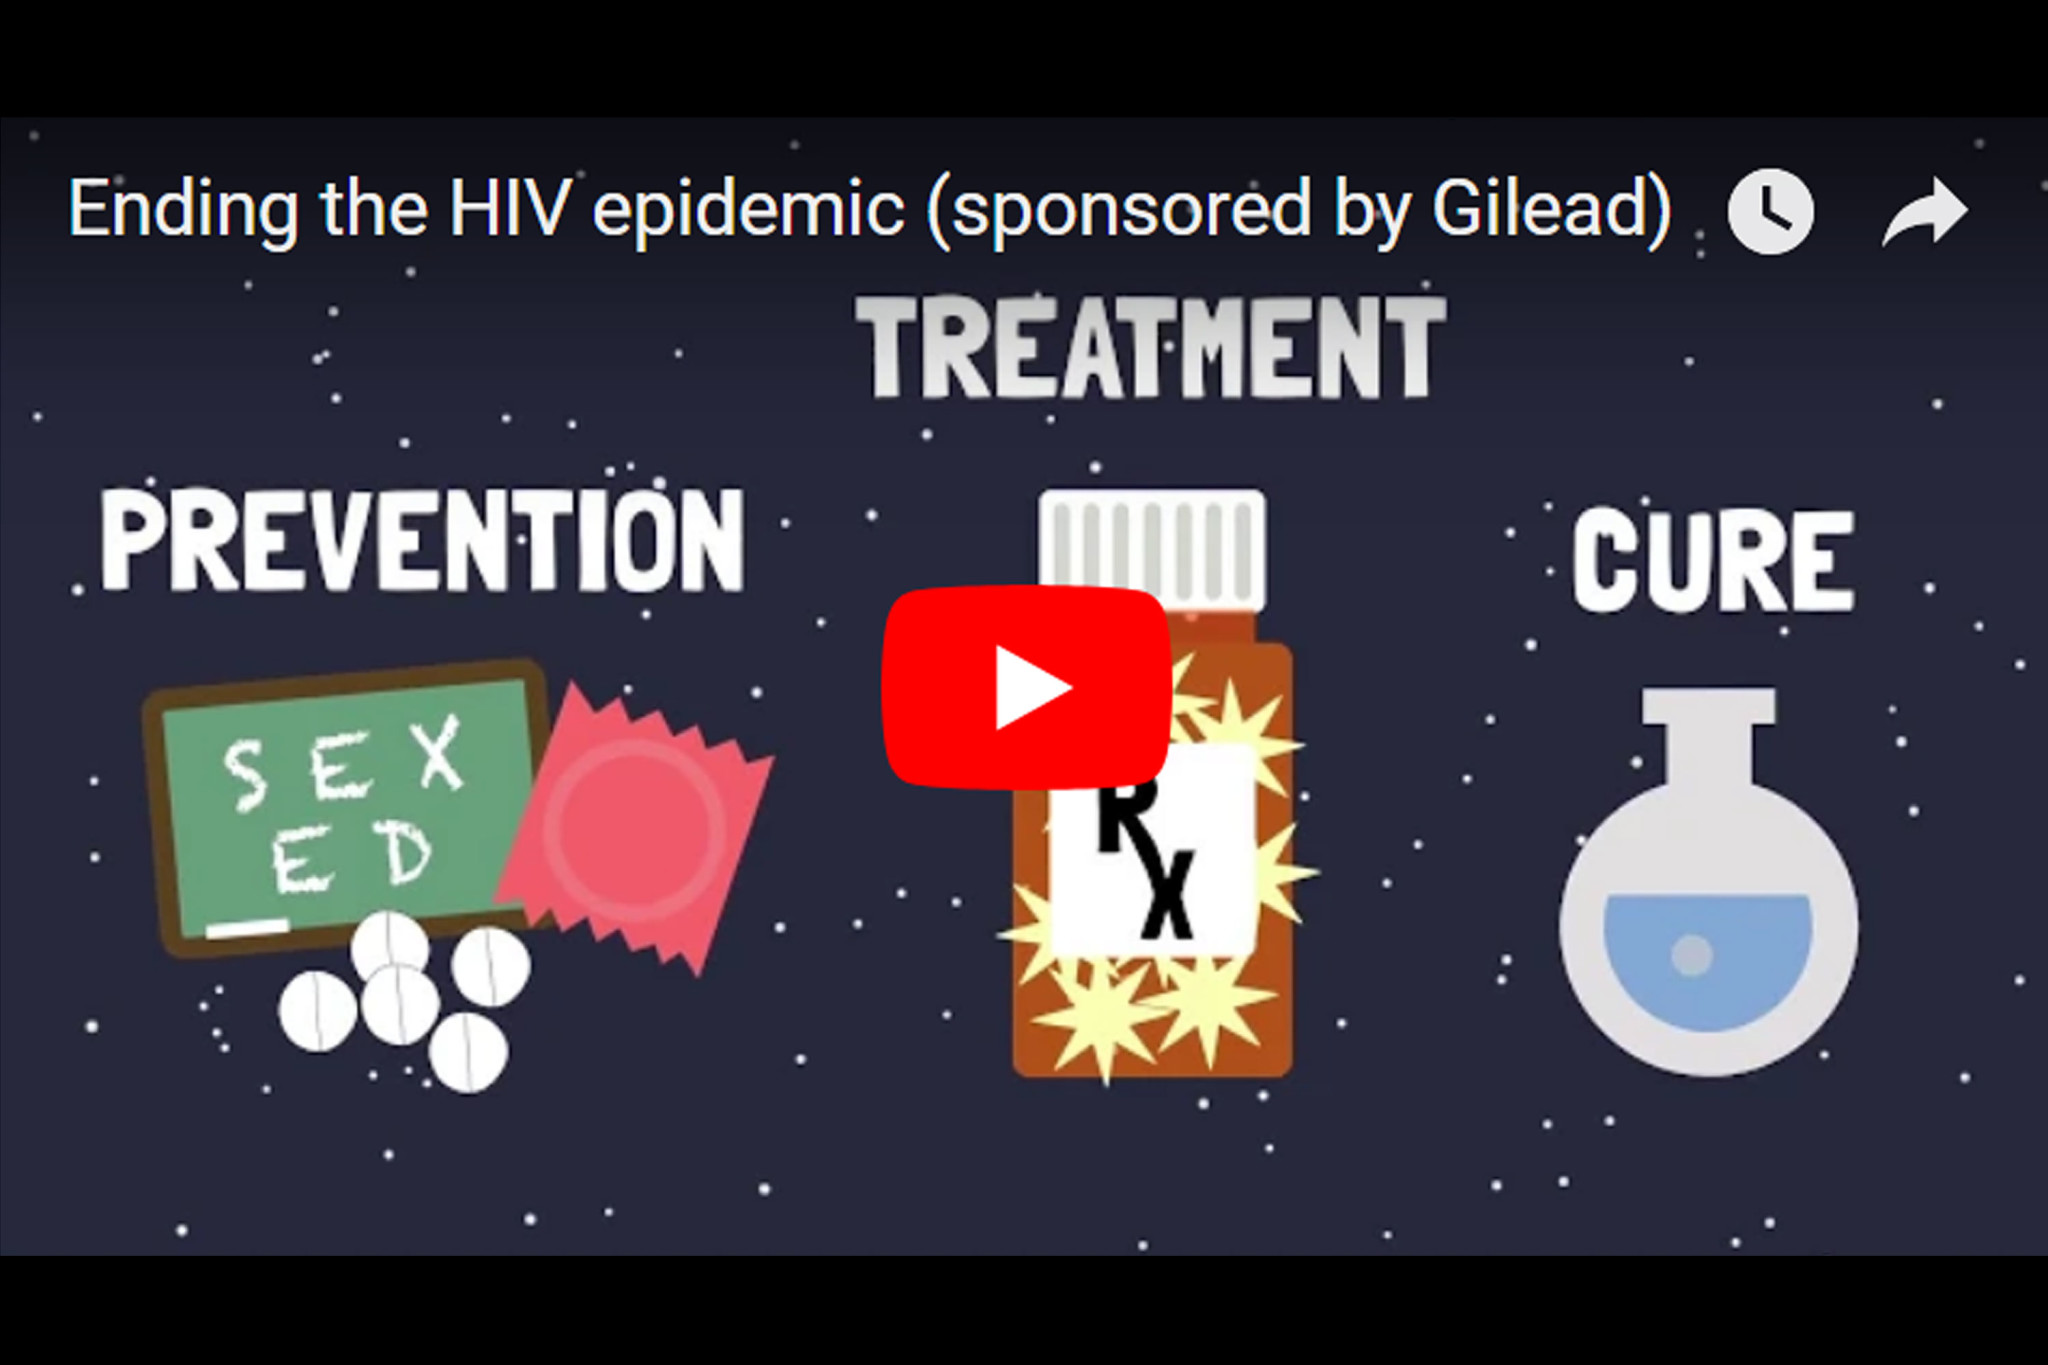 Video: Ending the HIV epidemic